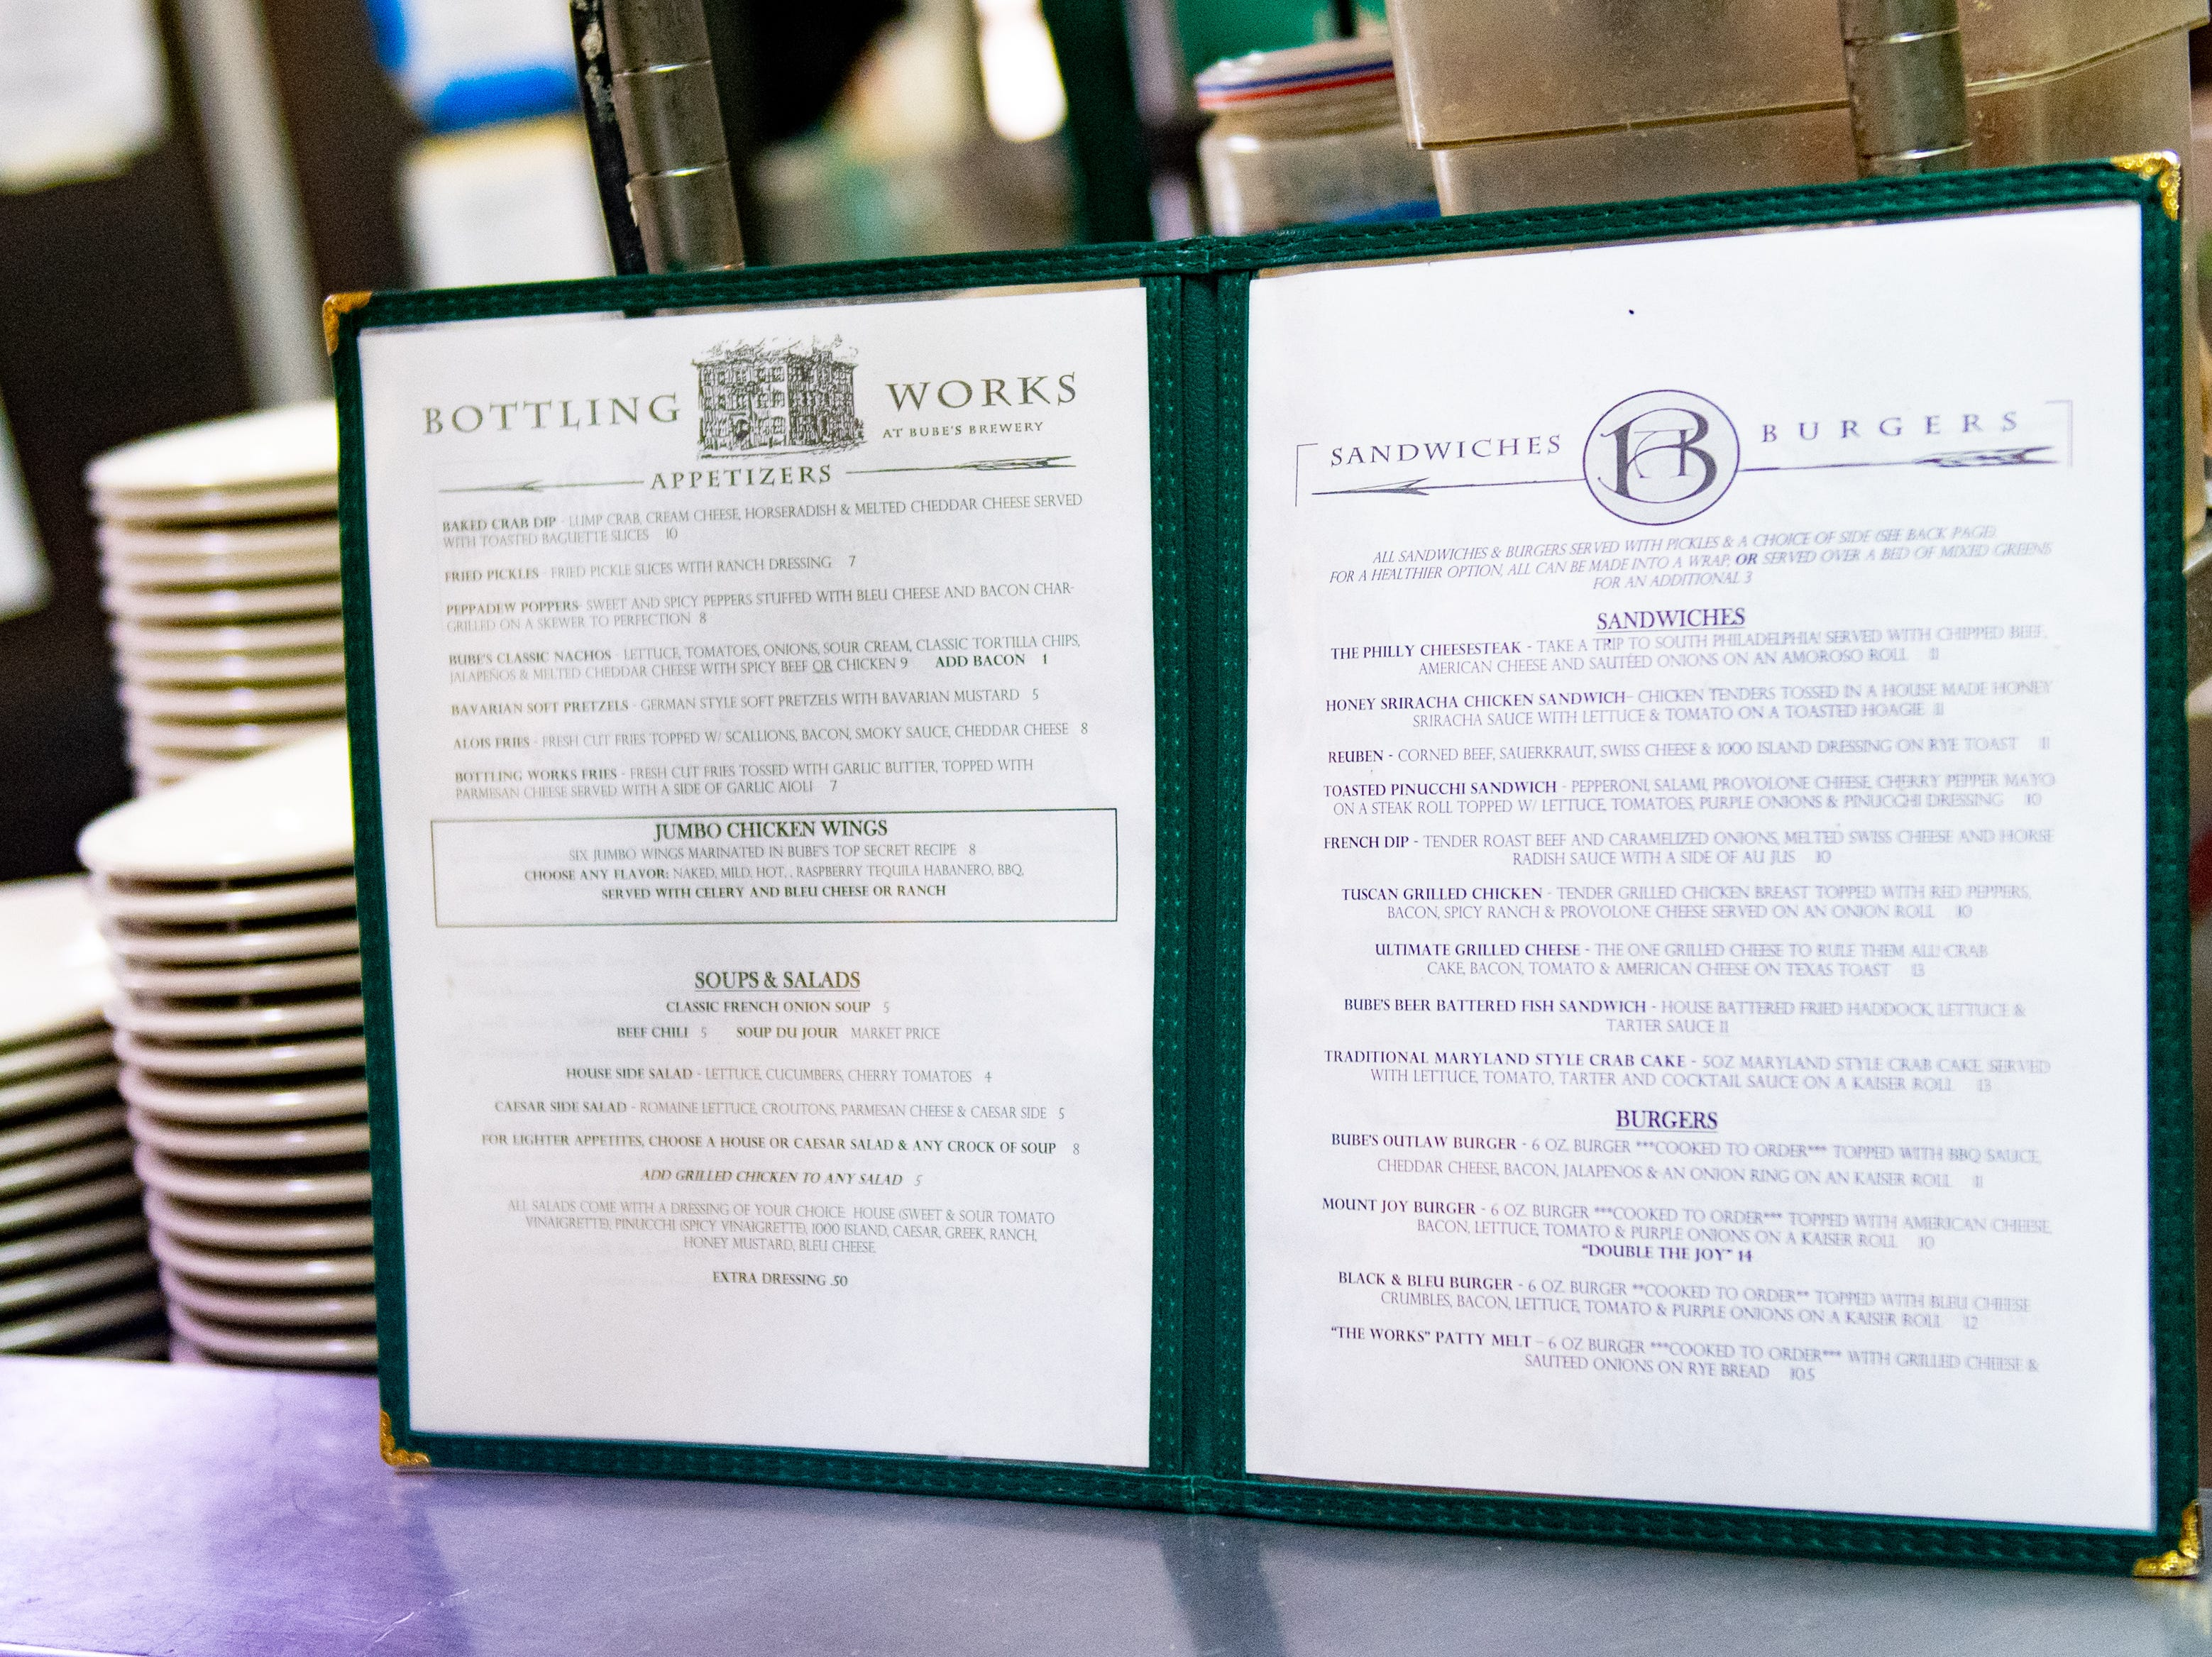 Chefs keep a menu open in the kitchen as a reference, while cooking. New menus are expected to be introduced in March for the Bottling Works, Biergarten, Cooper Shed and Catacombs, February 22, 2019.